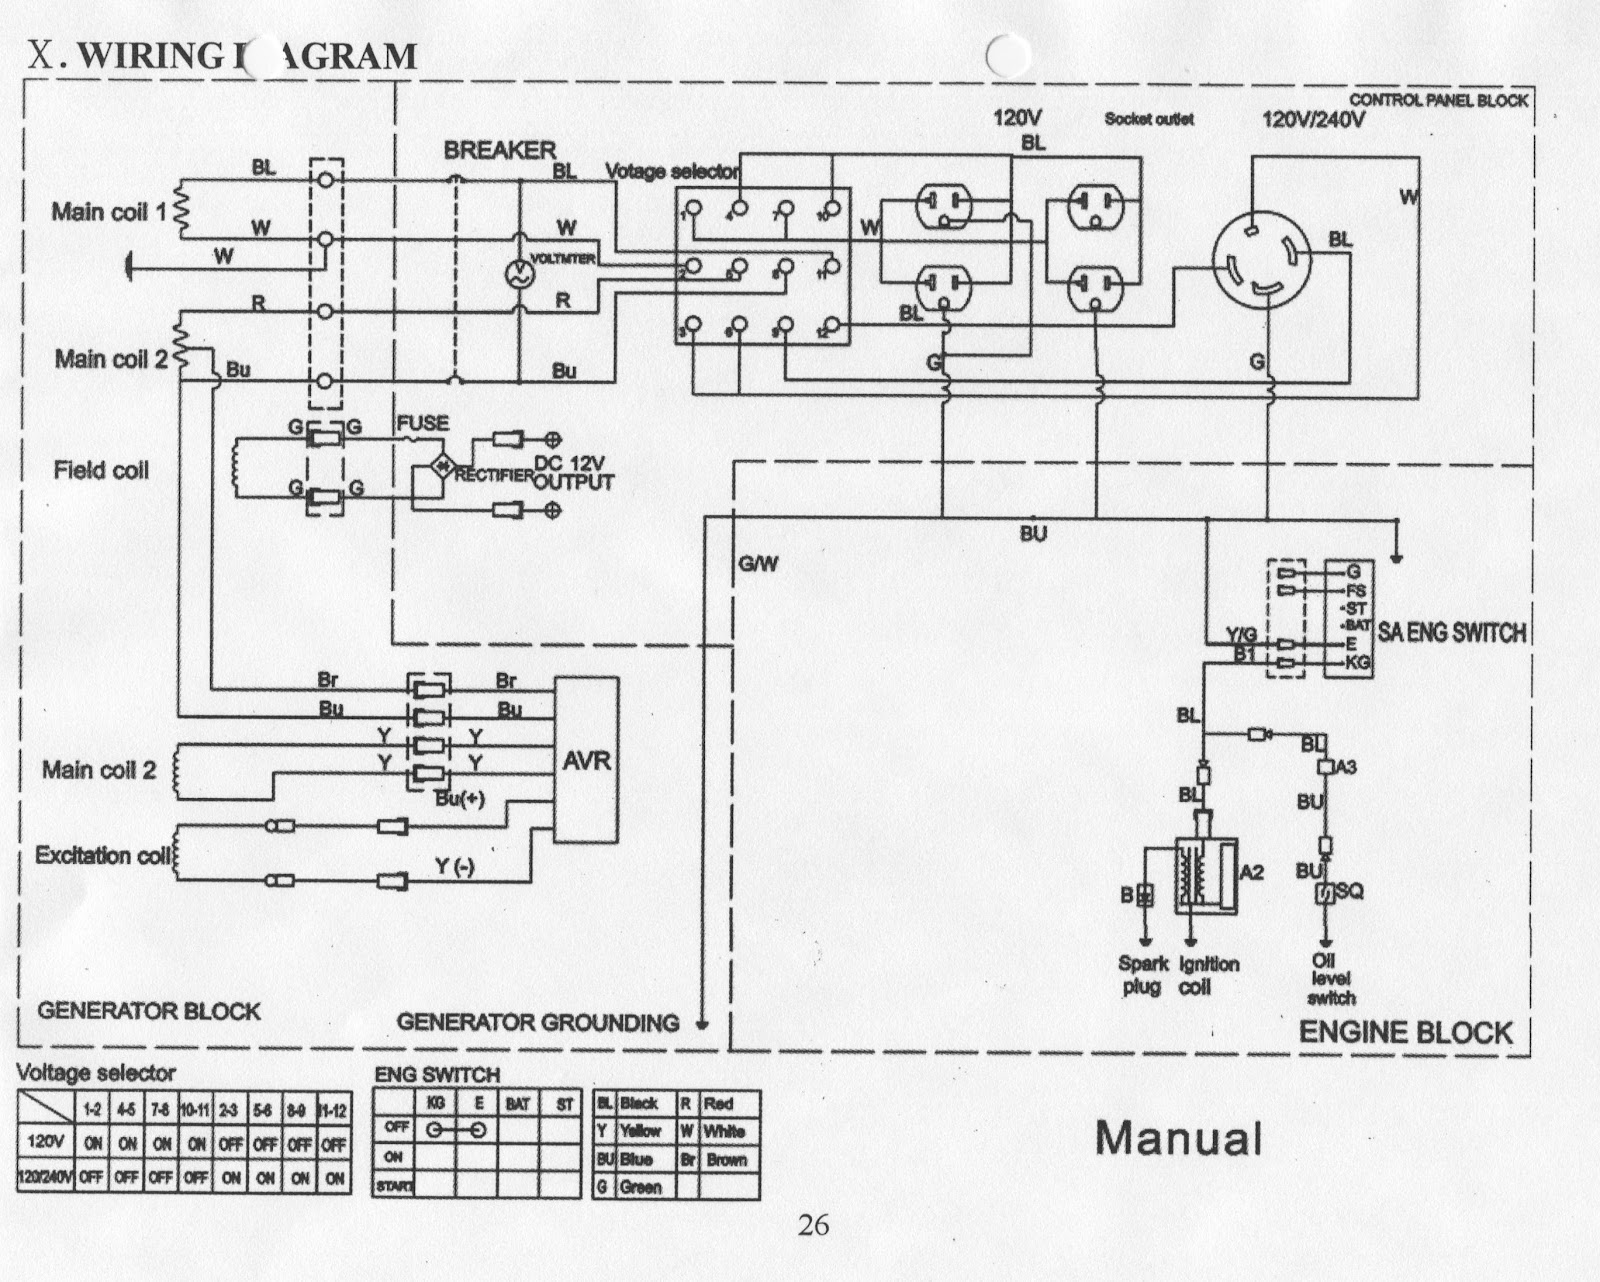 hanma atv schematics diagram 91 honda crx stereo wiring on well chinese 110 dirt bike